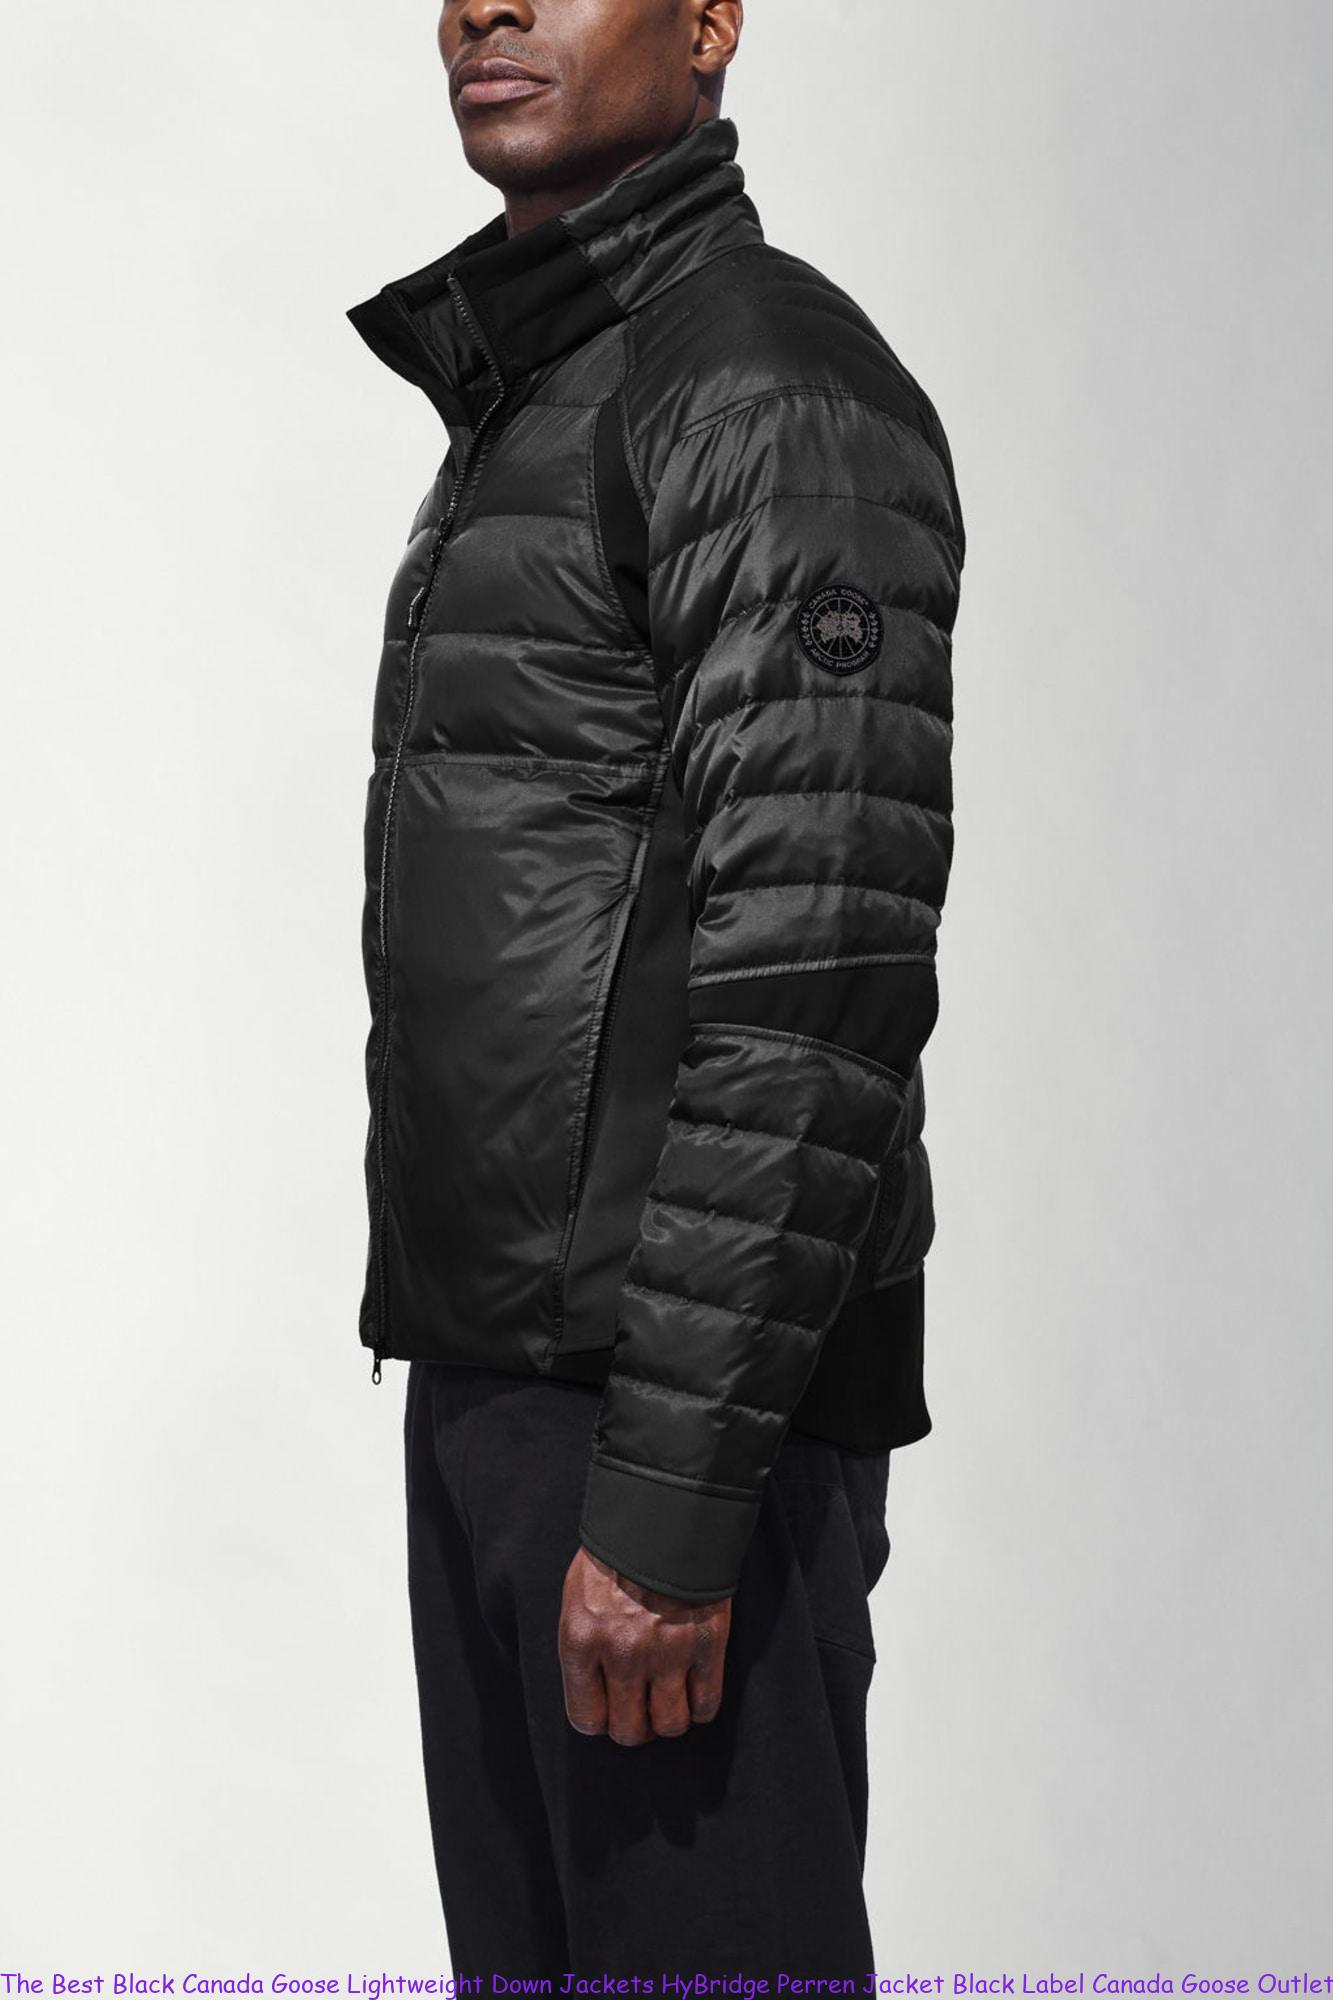 The Best Black Canada Goose Lightweight Down Jackets